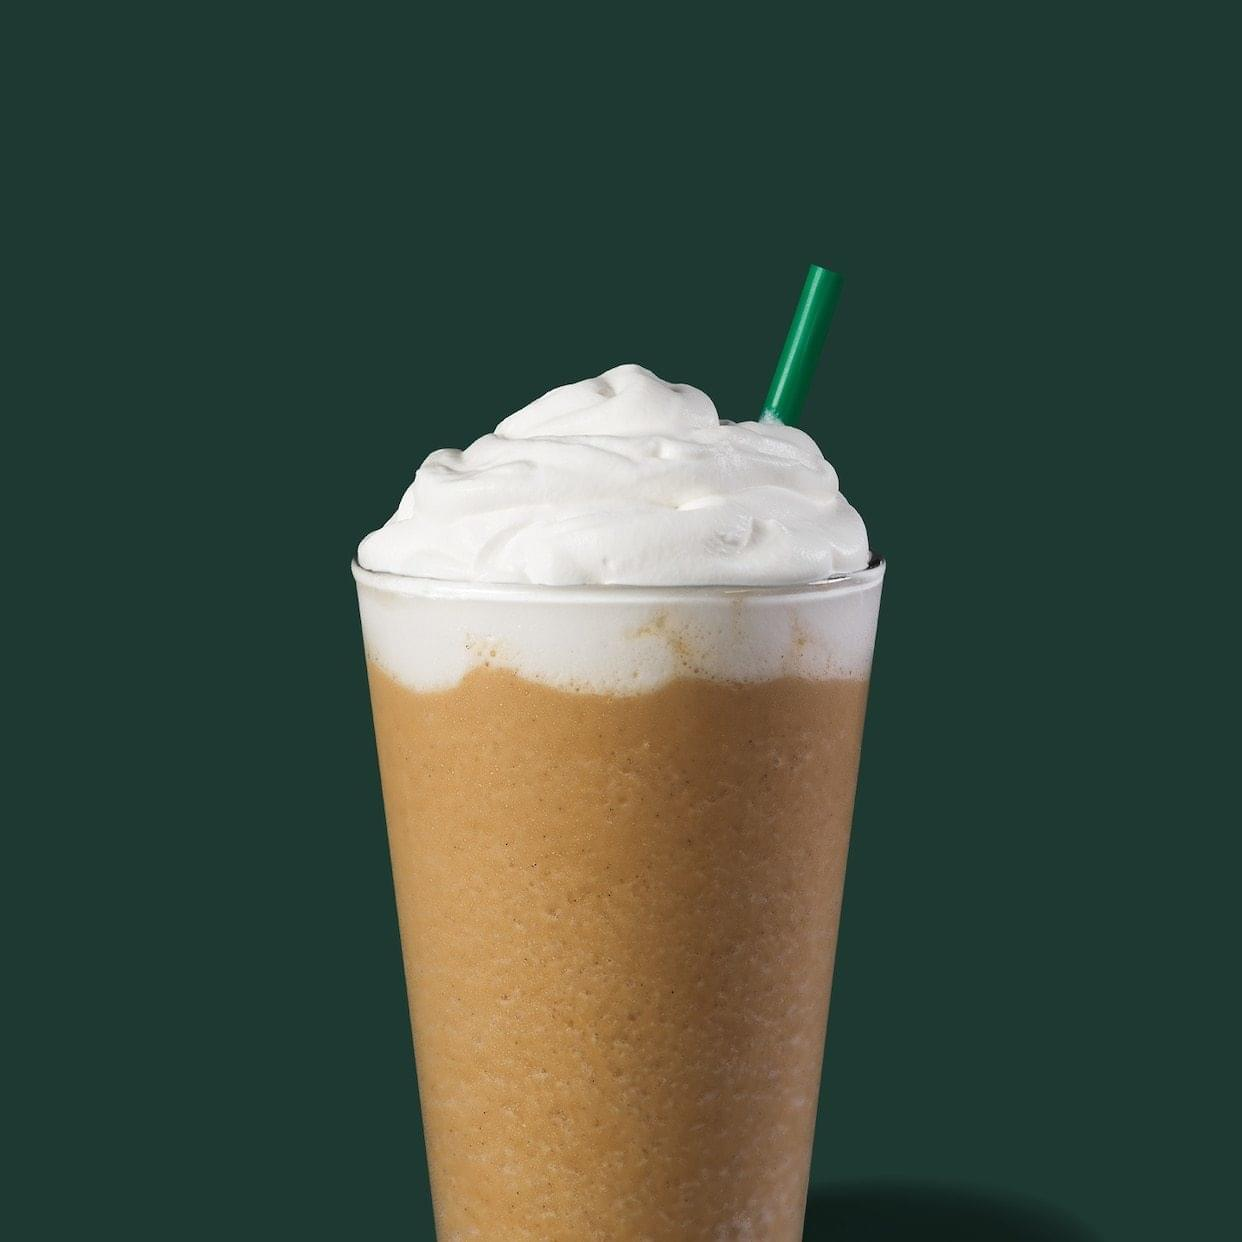 Starbucks Caffè Vanilla Frappuccino Nutrition Facts